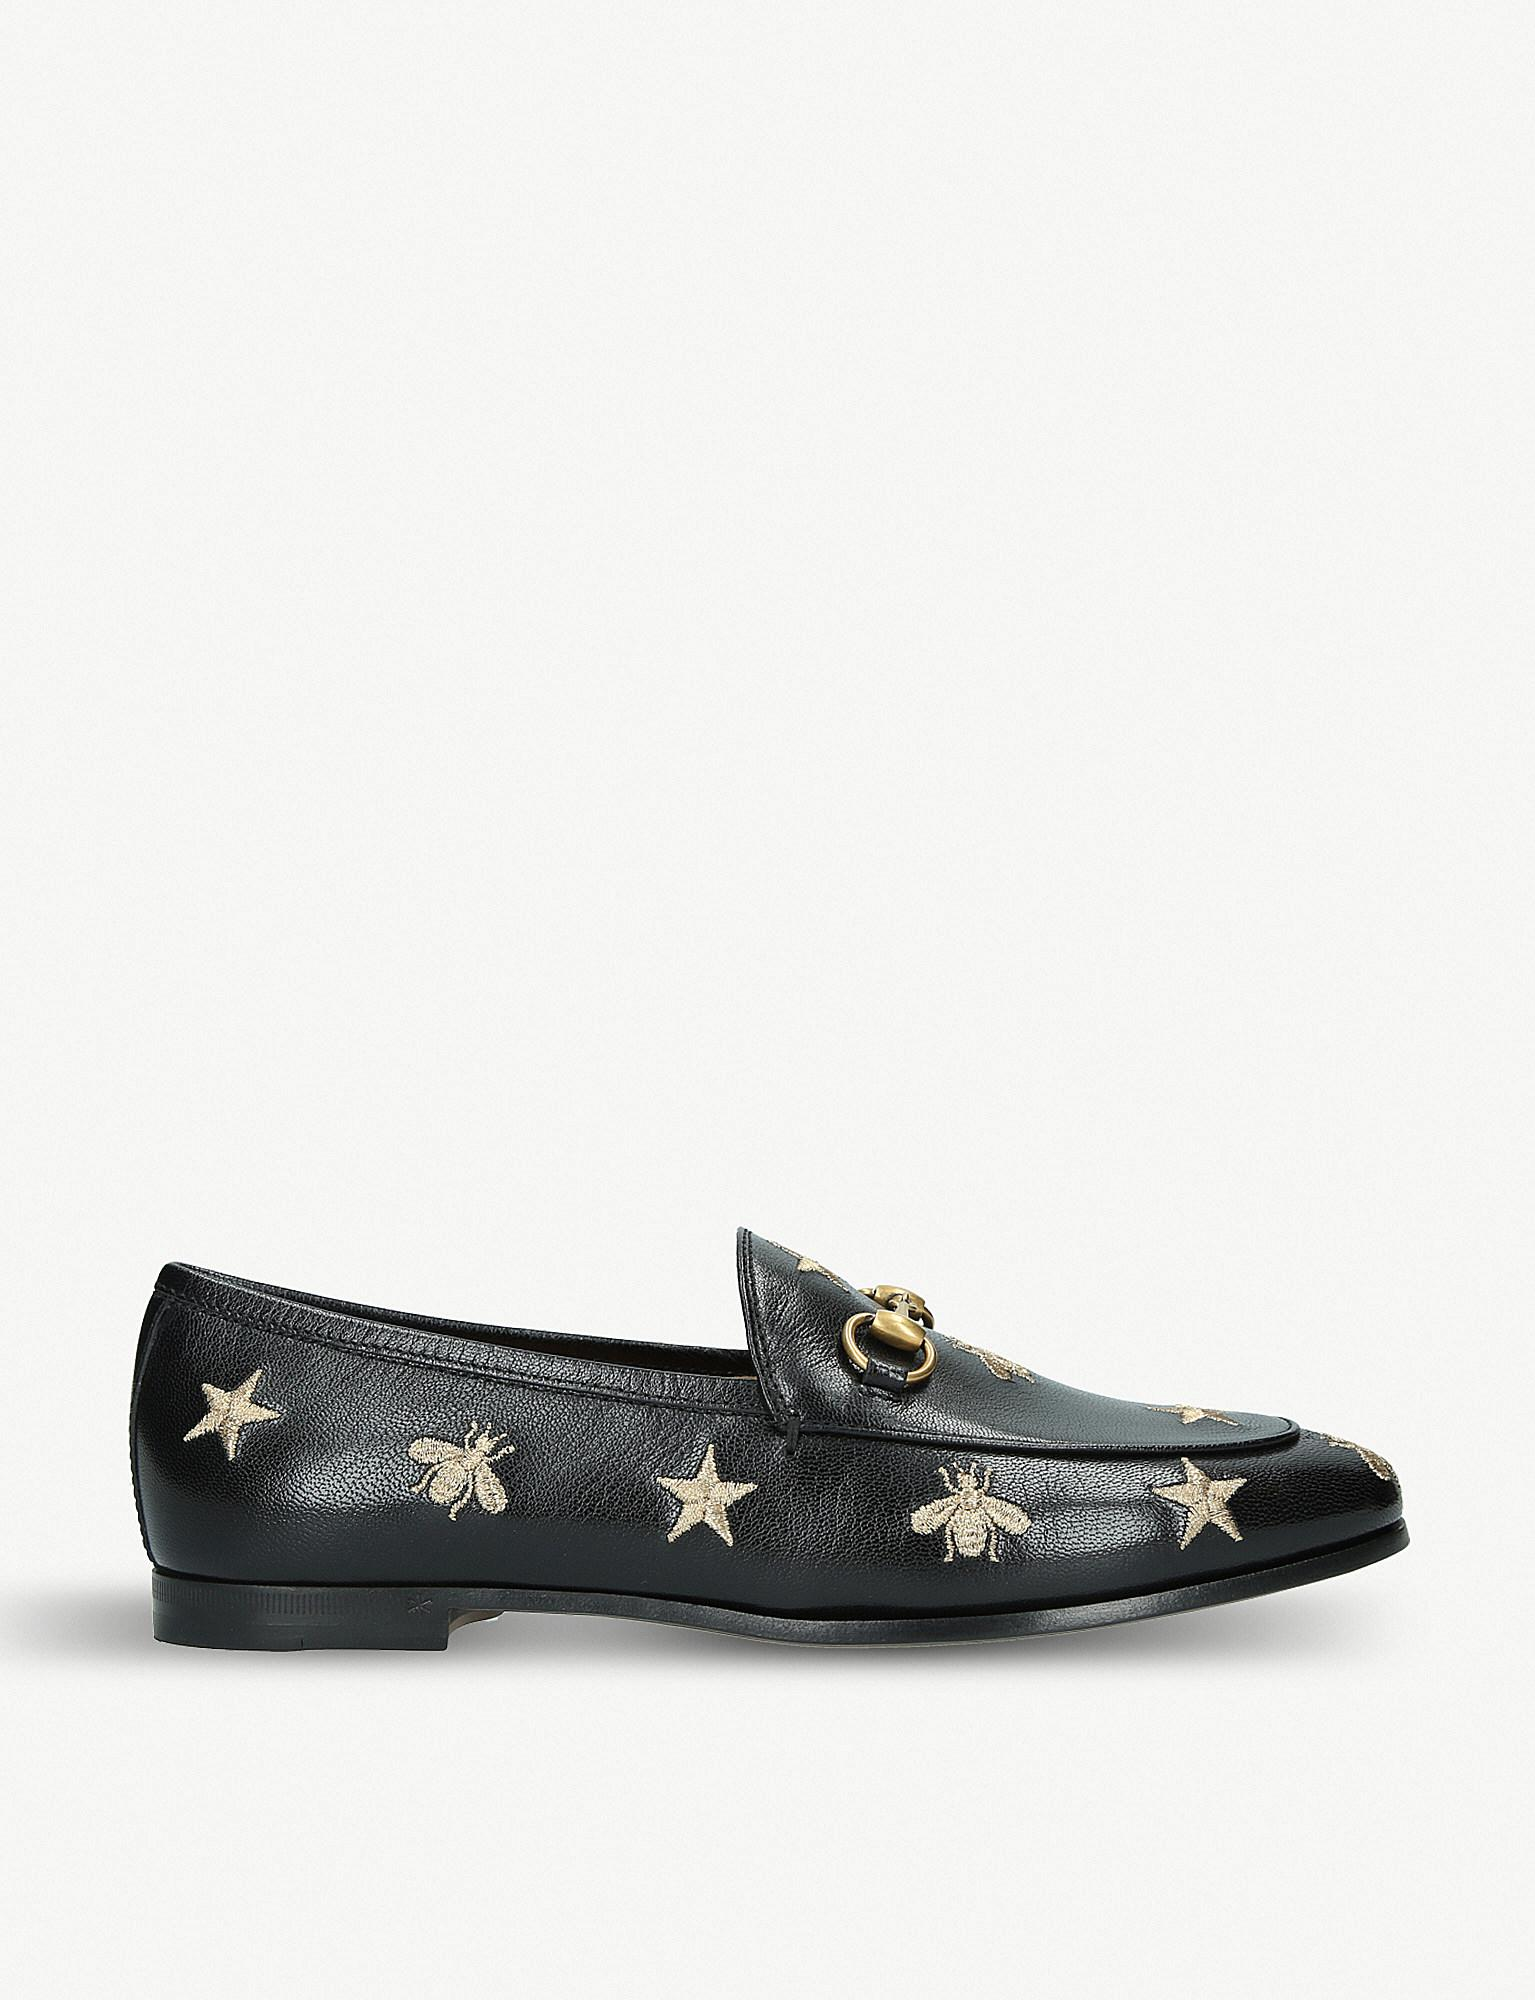 f9989cc22db Lyst - Gucci Black Gold Jordaan Leather Loafers in Black - Save 27%